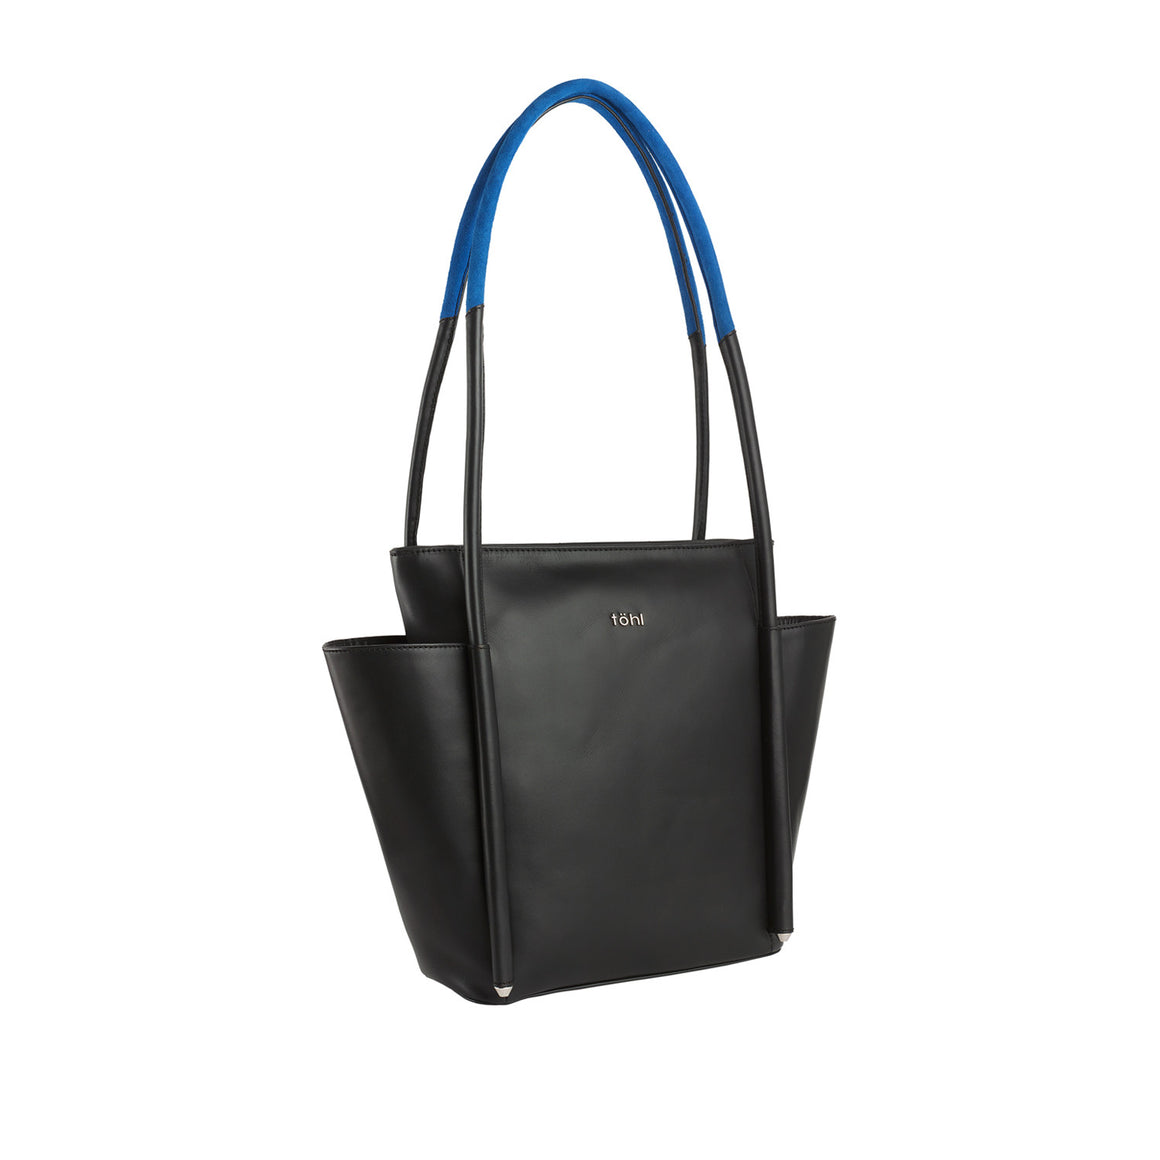 SB 0020 - TOHL PERRY WOMEN'S SHOPPER - CHARCOAL BLACK